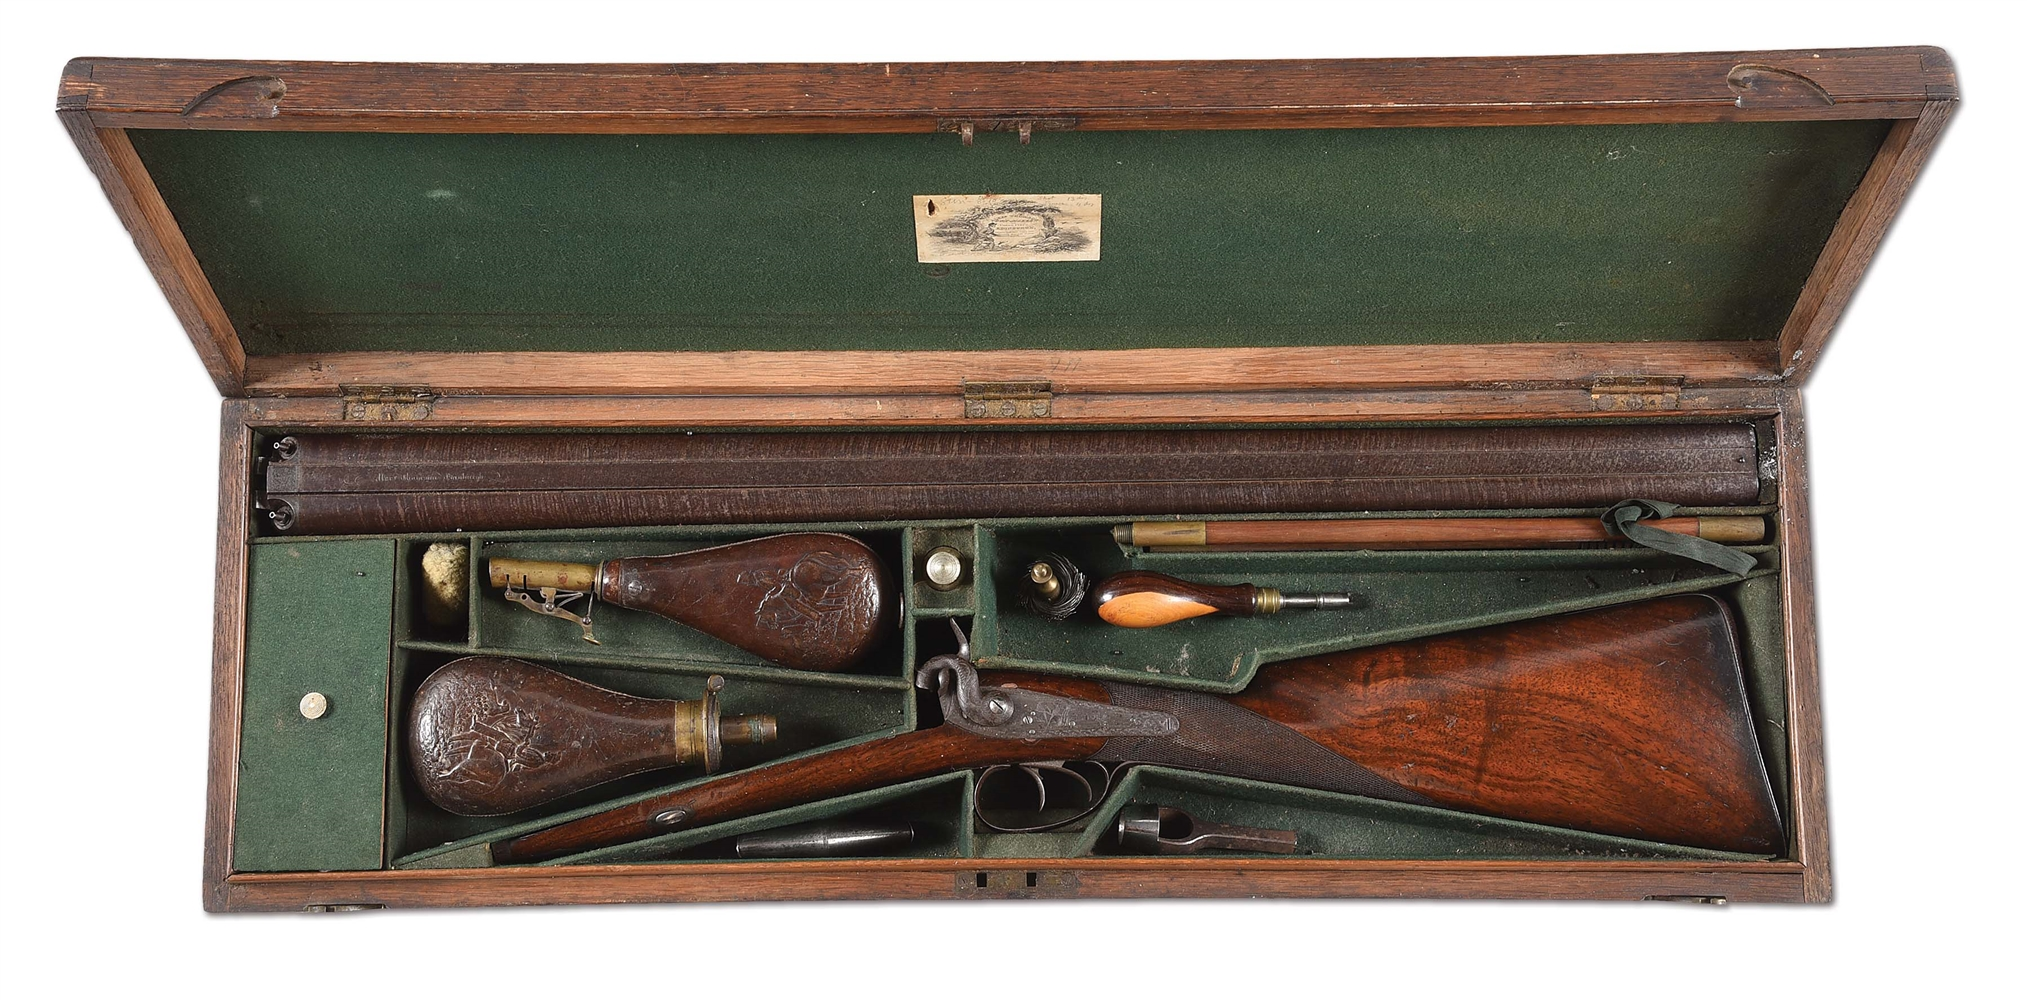 (A) ALEXANDER THOMSON PERCUSSION 11 GAUGE SHOTGUN IN CASE WITH ACCESSORIES.